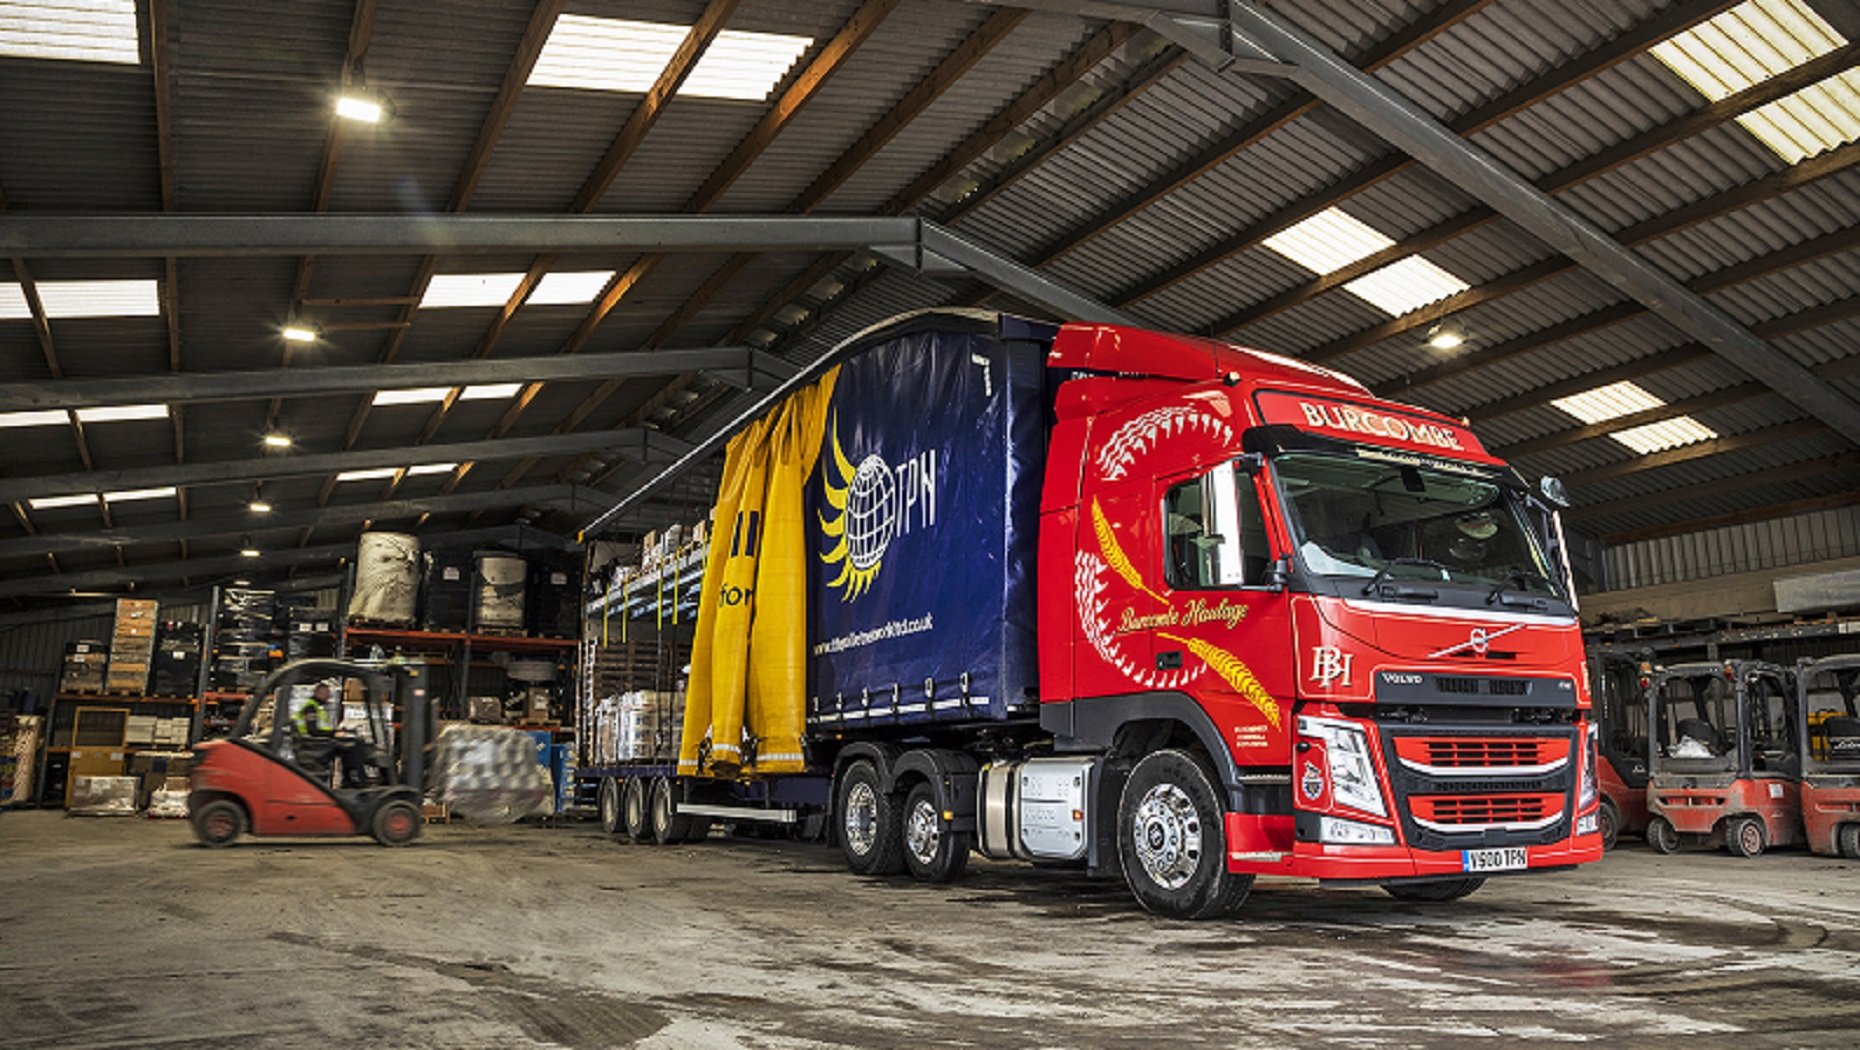 The UK's First I-Shift, Dual Clutch equipped Volvo FM Tractor Unit is 'King of the Hills' in Cornwall and Devon